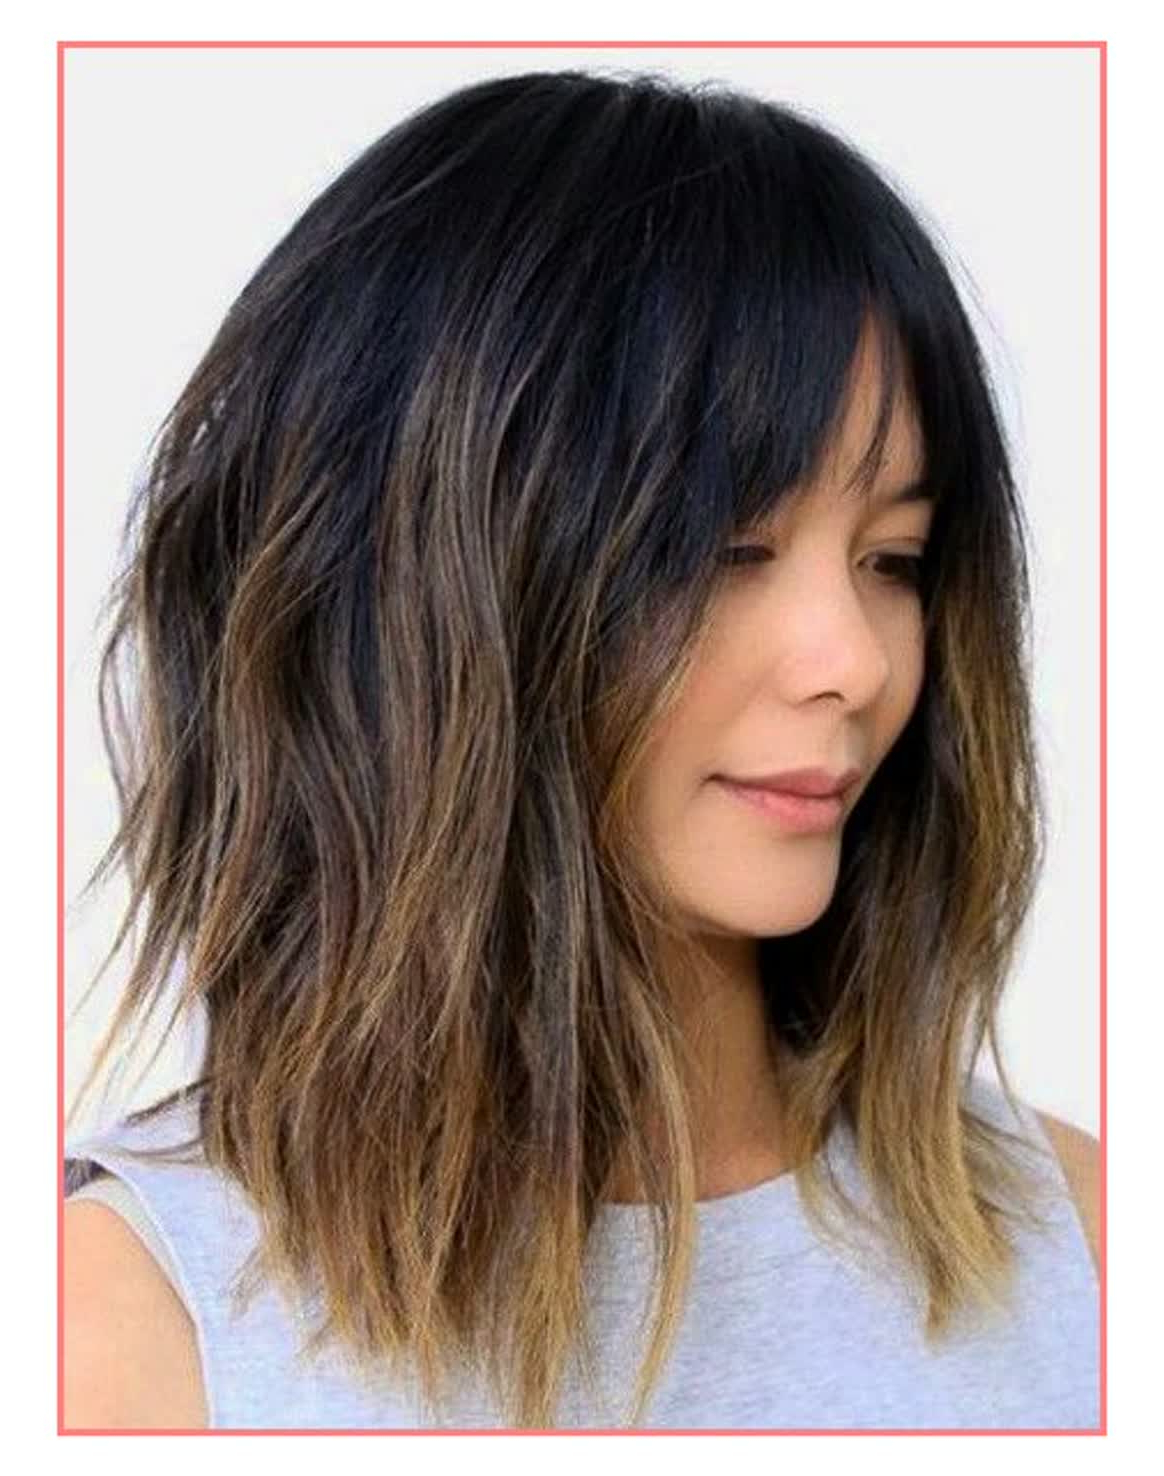 Medium Hairstyle : Astounding Womens Medium Hairstyles Trending In Most Current Best Medium Hairstyles With Bangs (View 10 of 20)